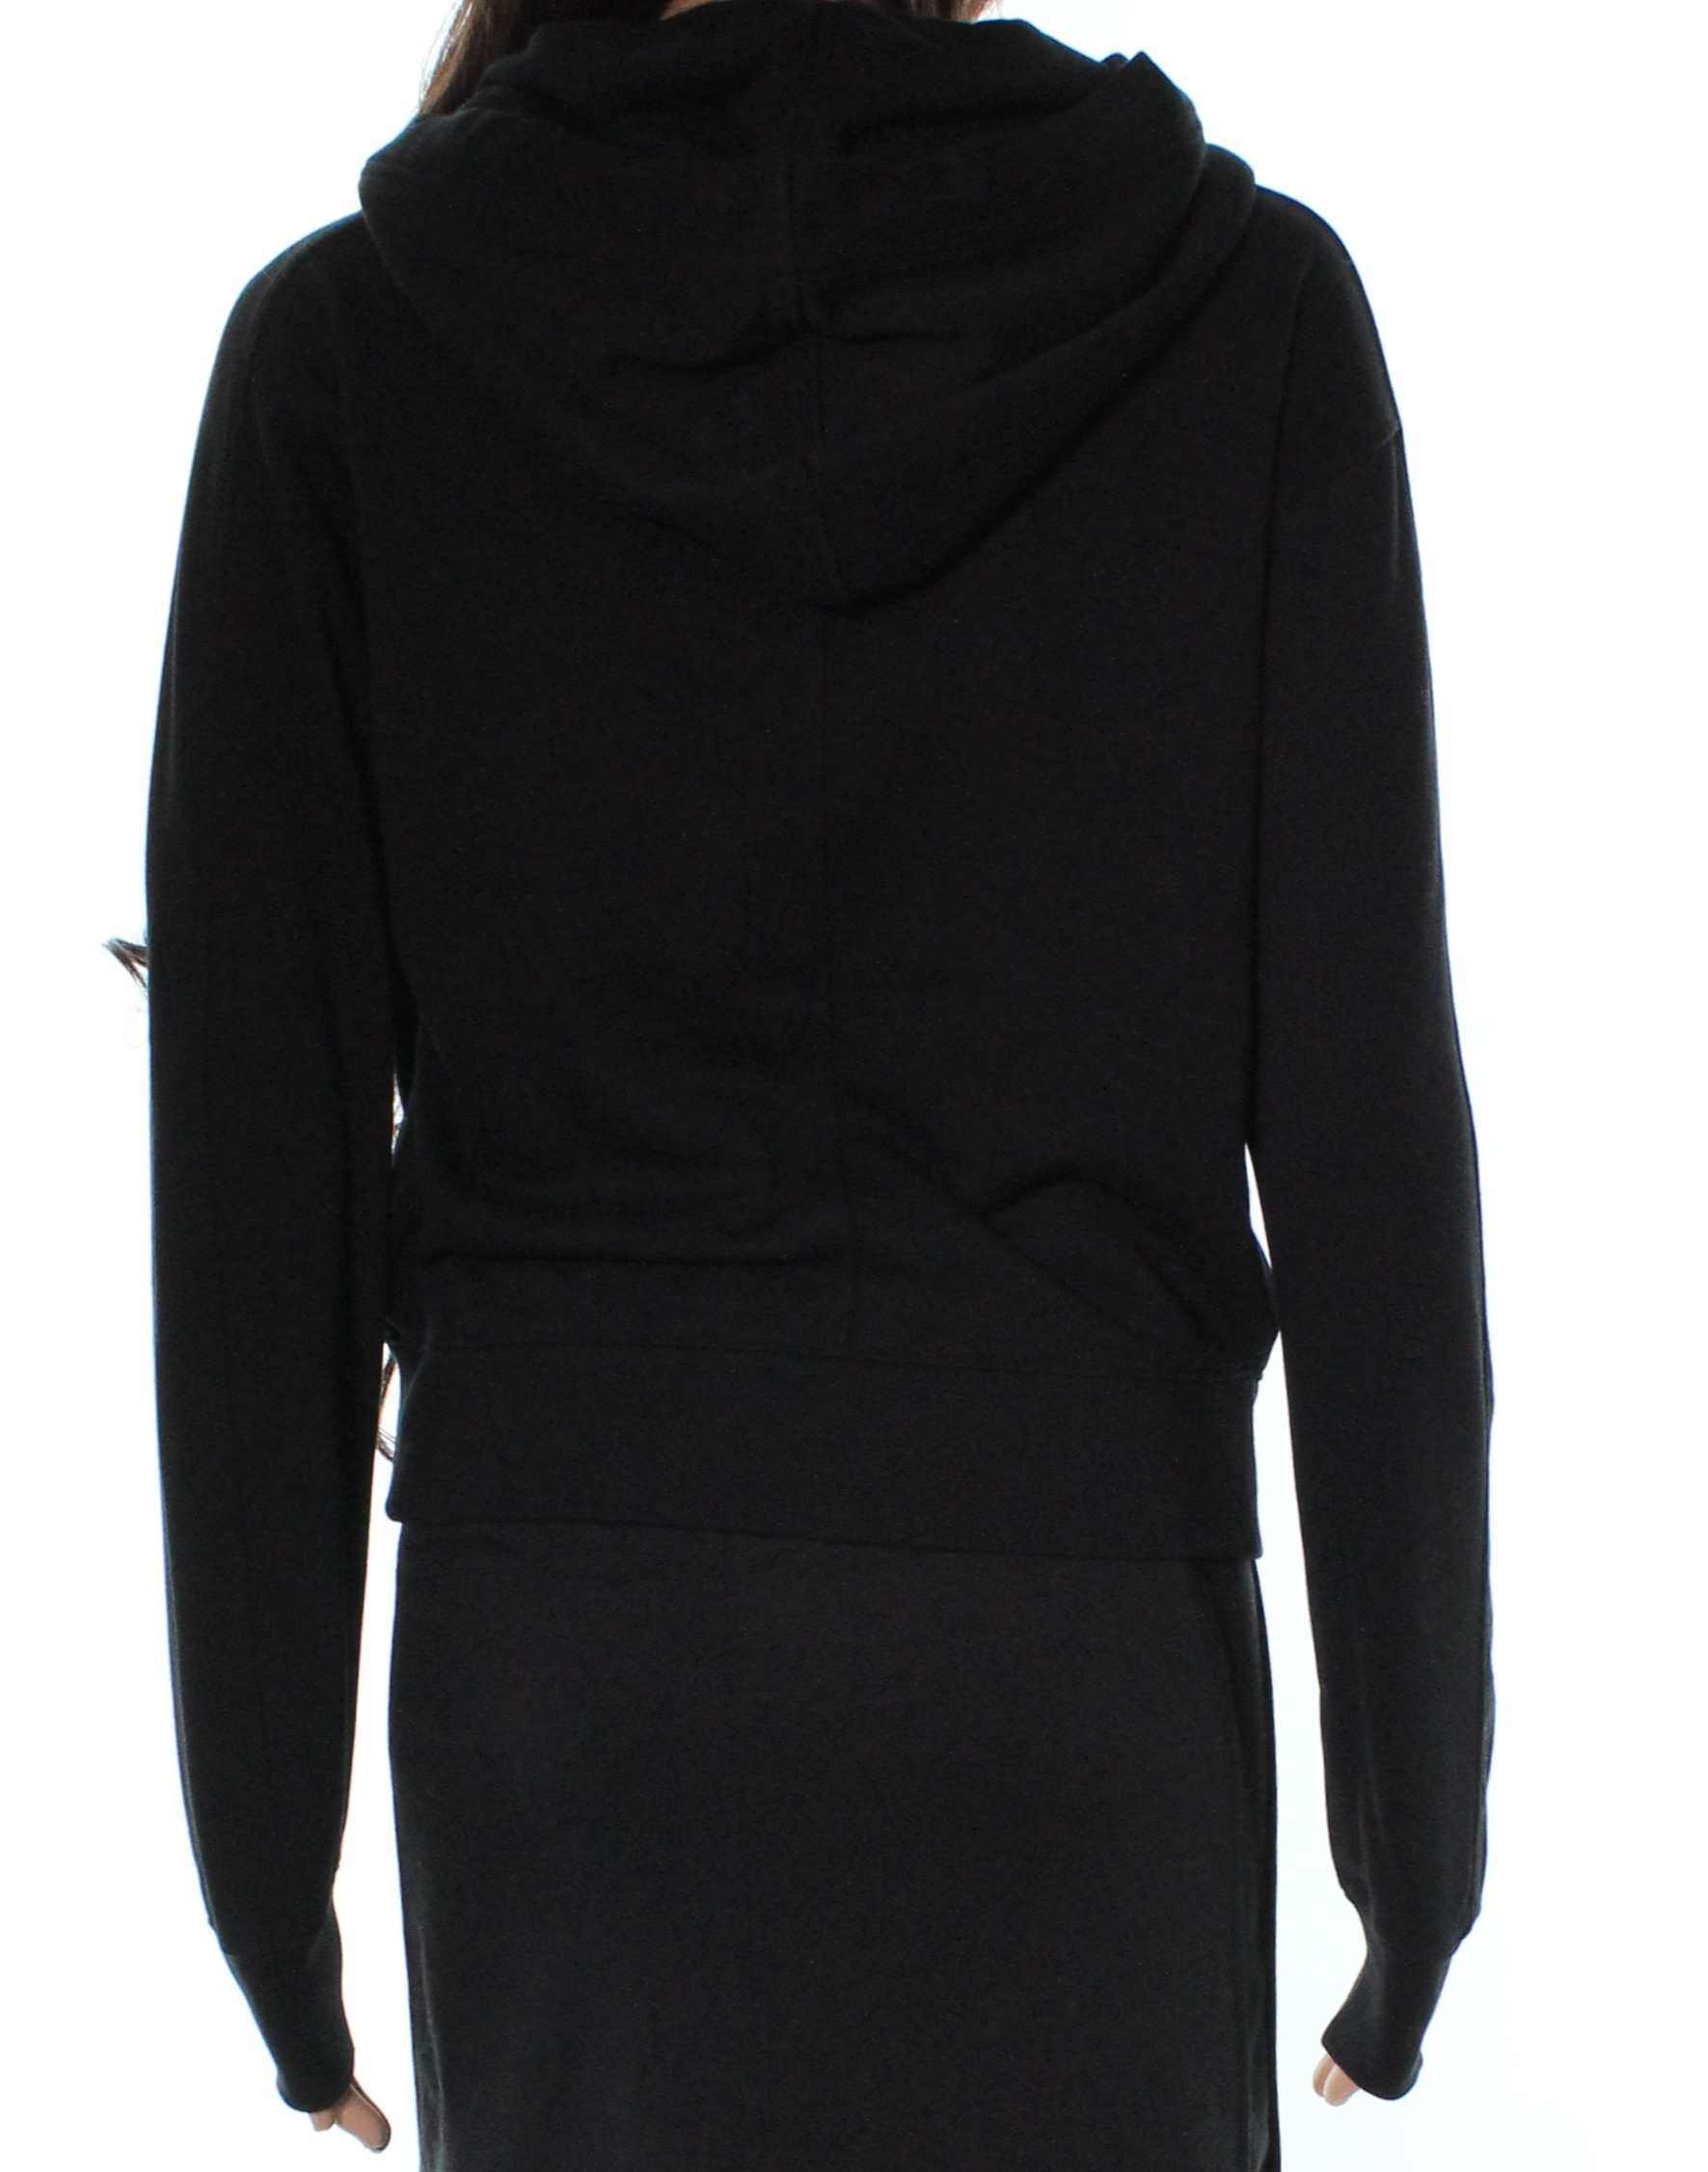 af2da8397ac Details about Vince NEW Black Full Zip Long Sleeve Women s Size XS Hoodie  Sweater  225  549